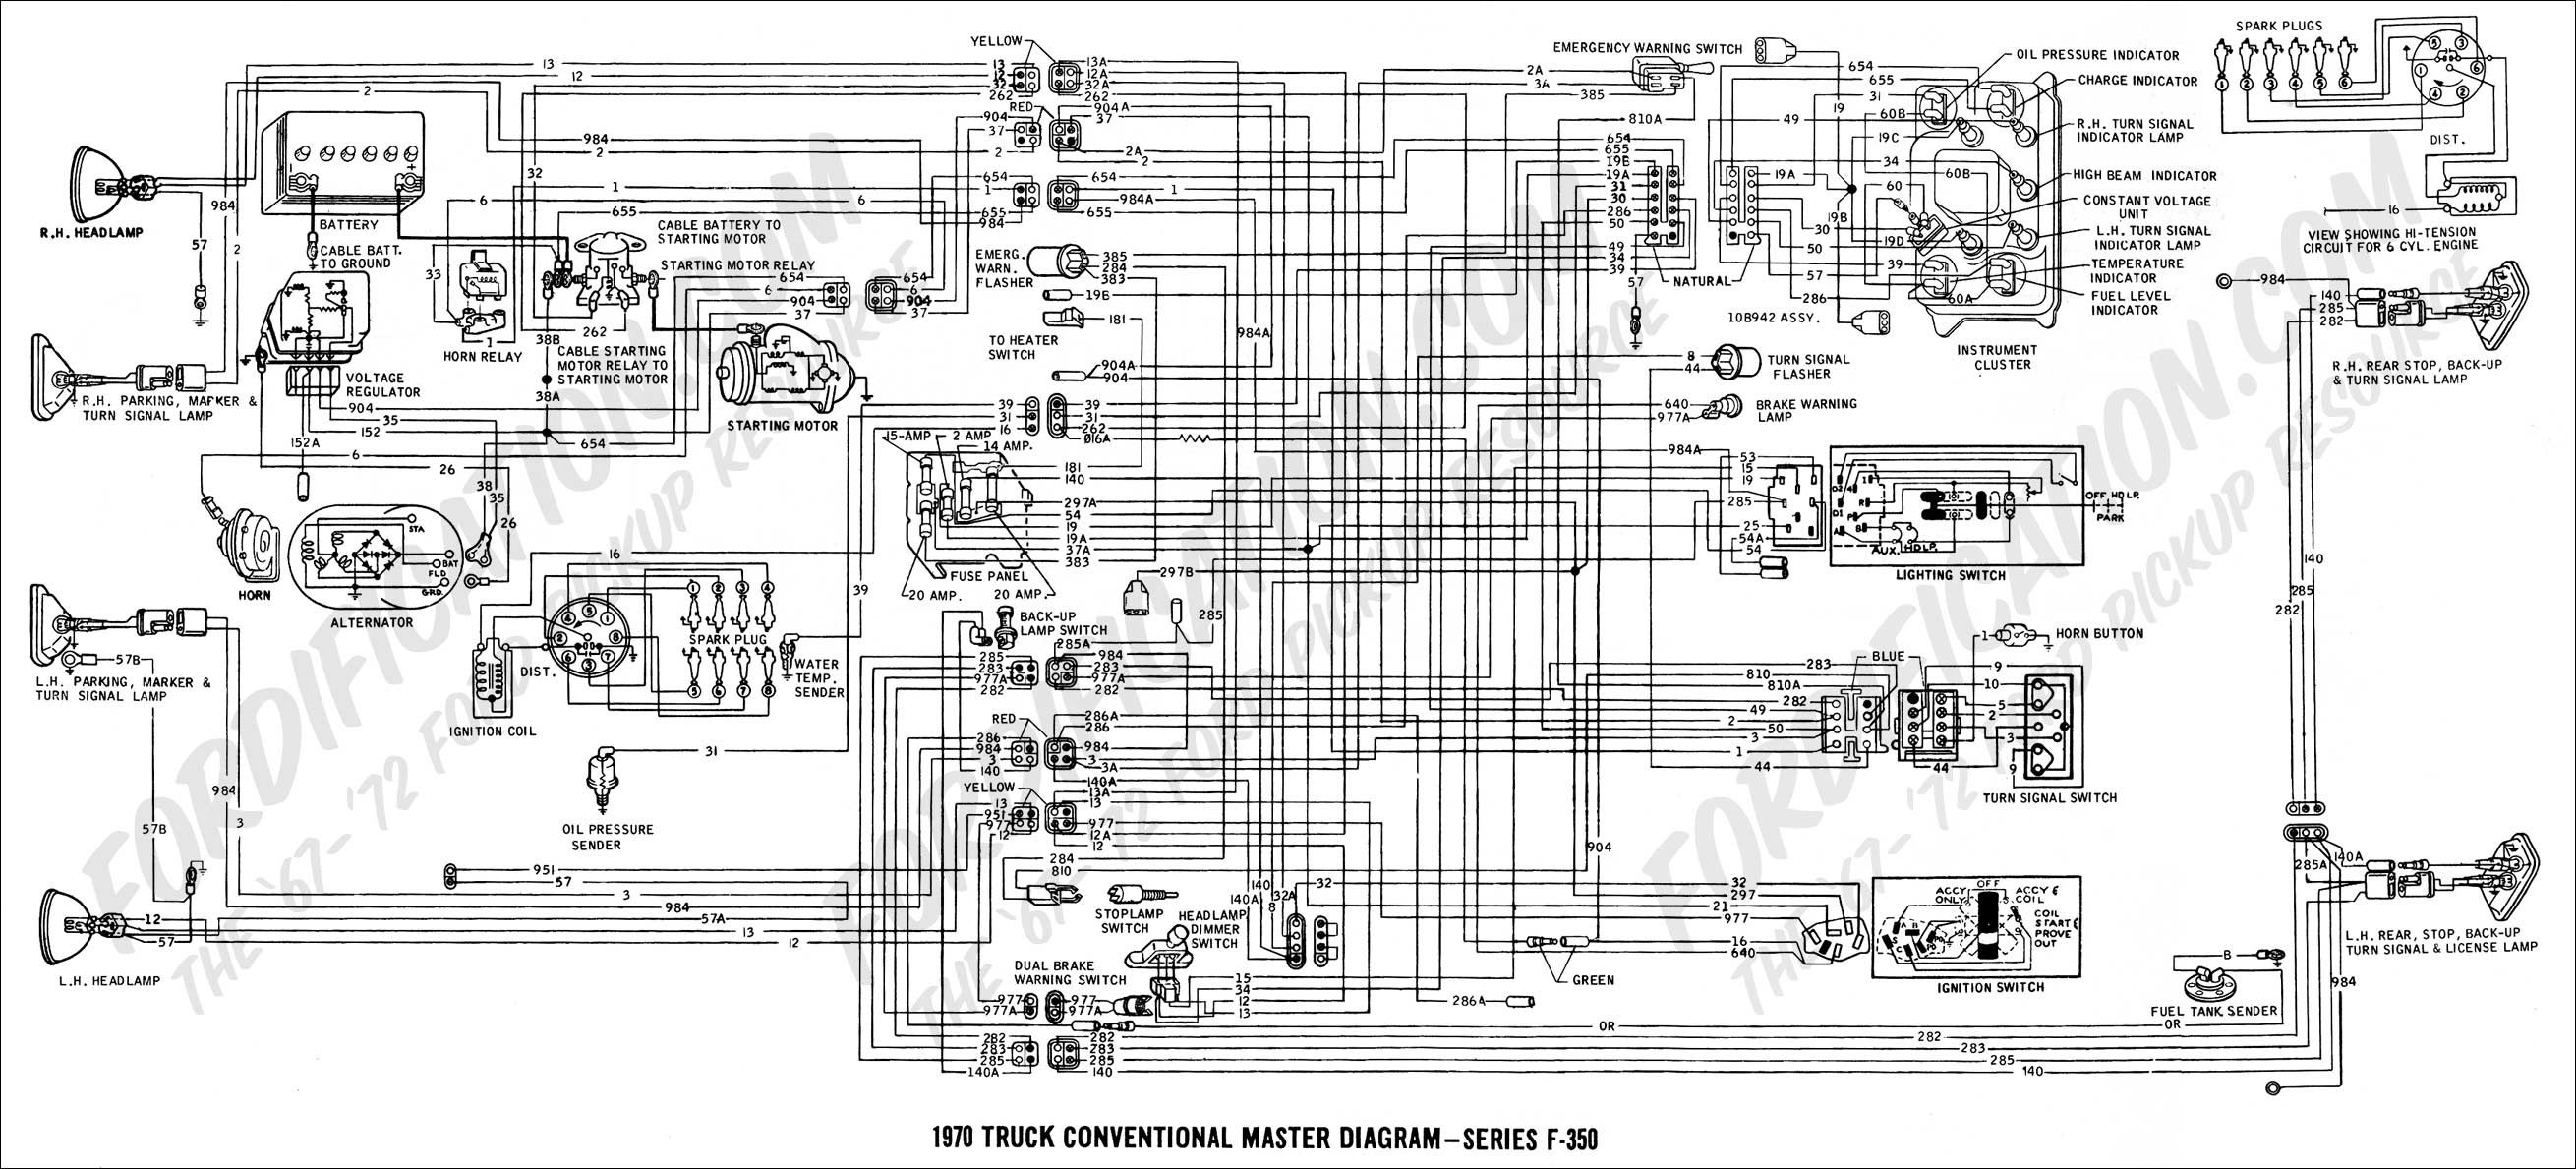 Ford Truck Wiring Diagrams New Ground Pool Electrical Wiring Diagram Diagram Of Ford Truck Wiring Diagrams